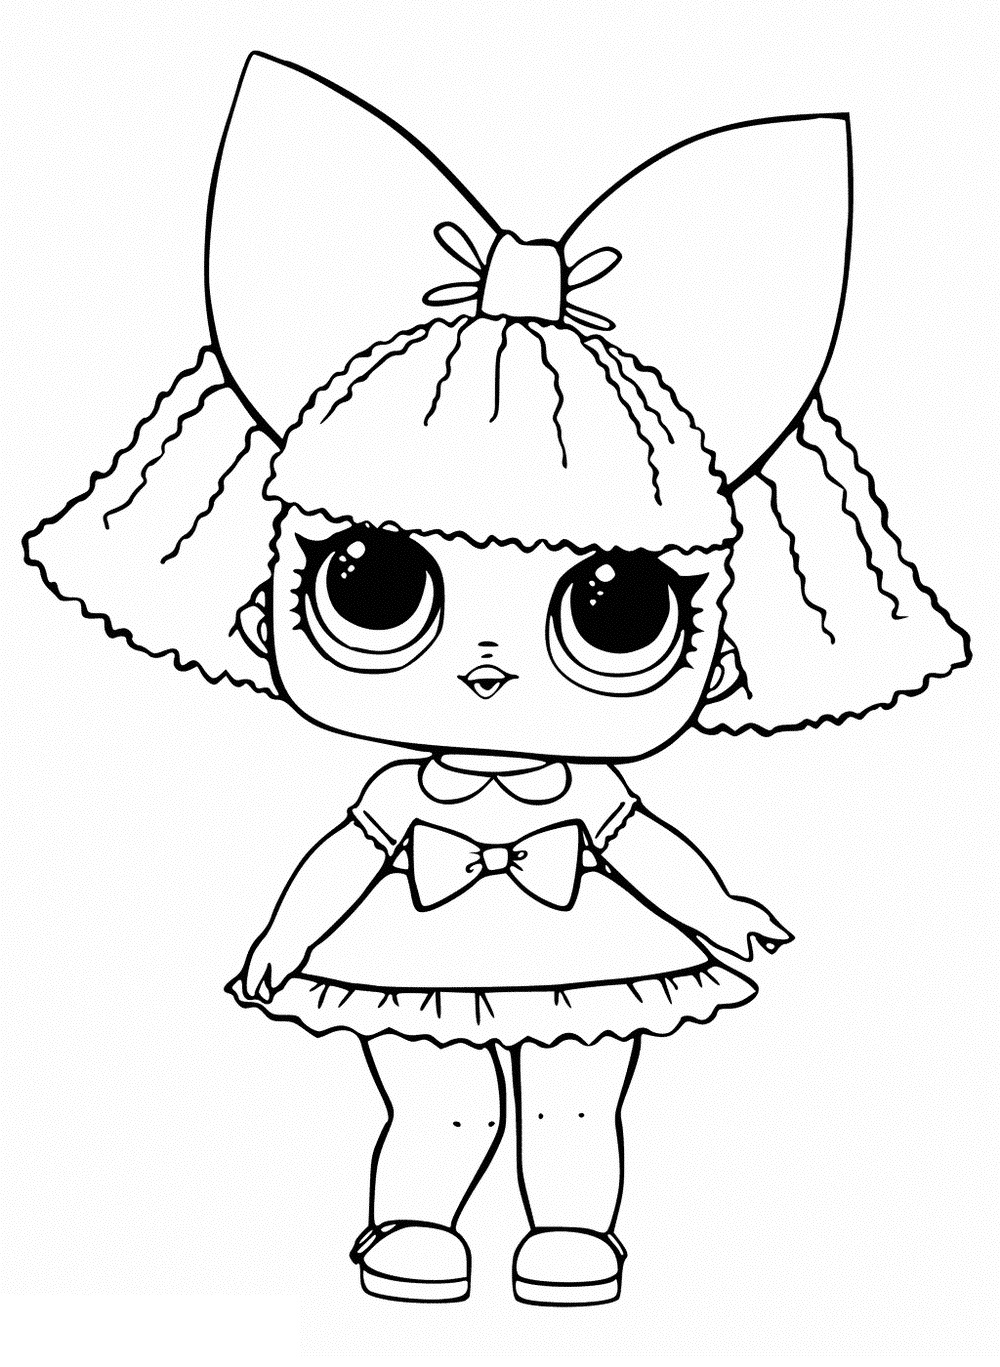 doll coloring page dolls coloring pages free printable dolls coloring pages doll coloring page 1 1